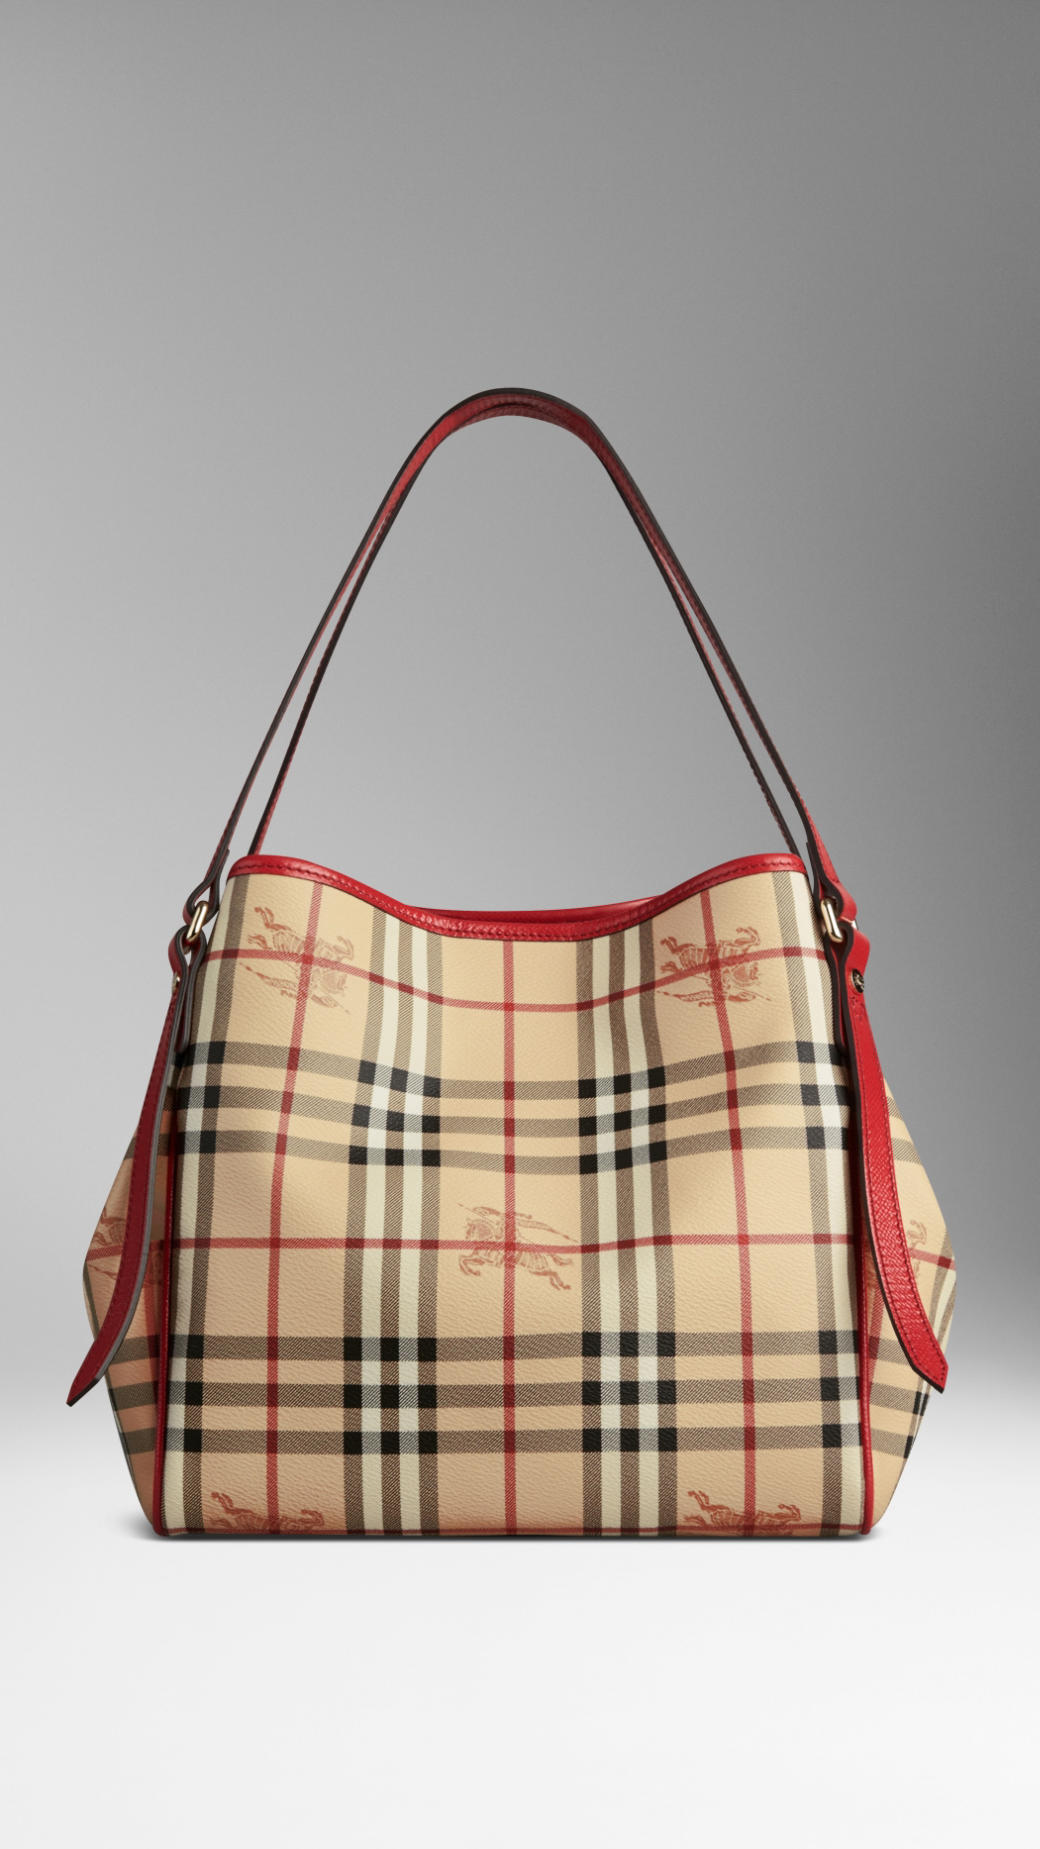 Lyst - Burberry Small Haymarket Check Patent Trim Tote Bag in Red b3acbcc584d5c